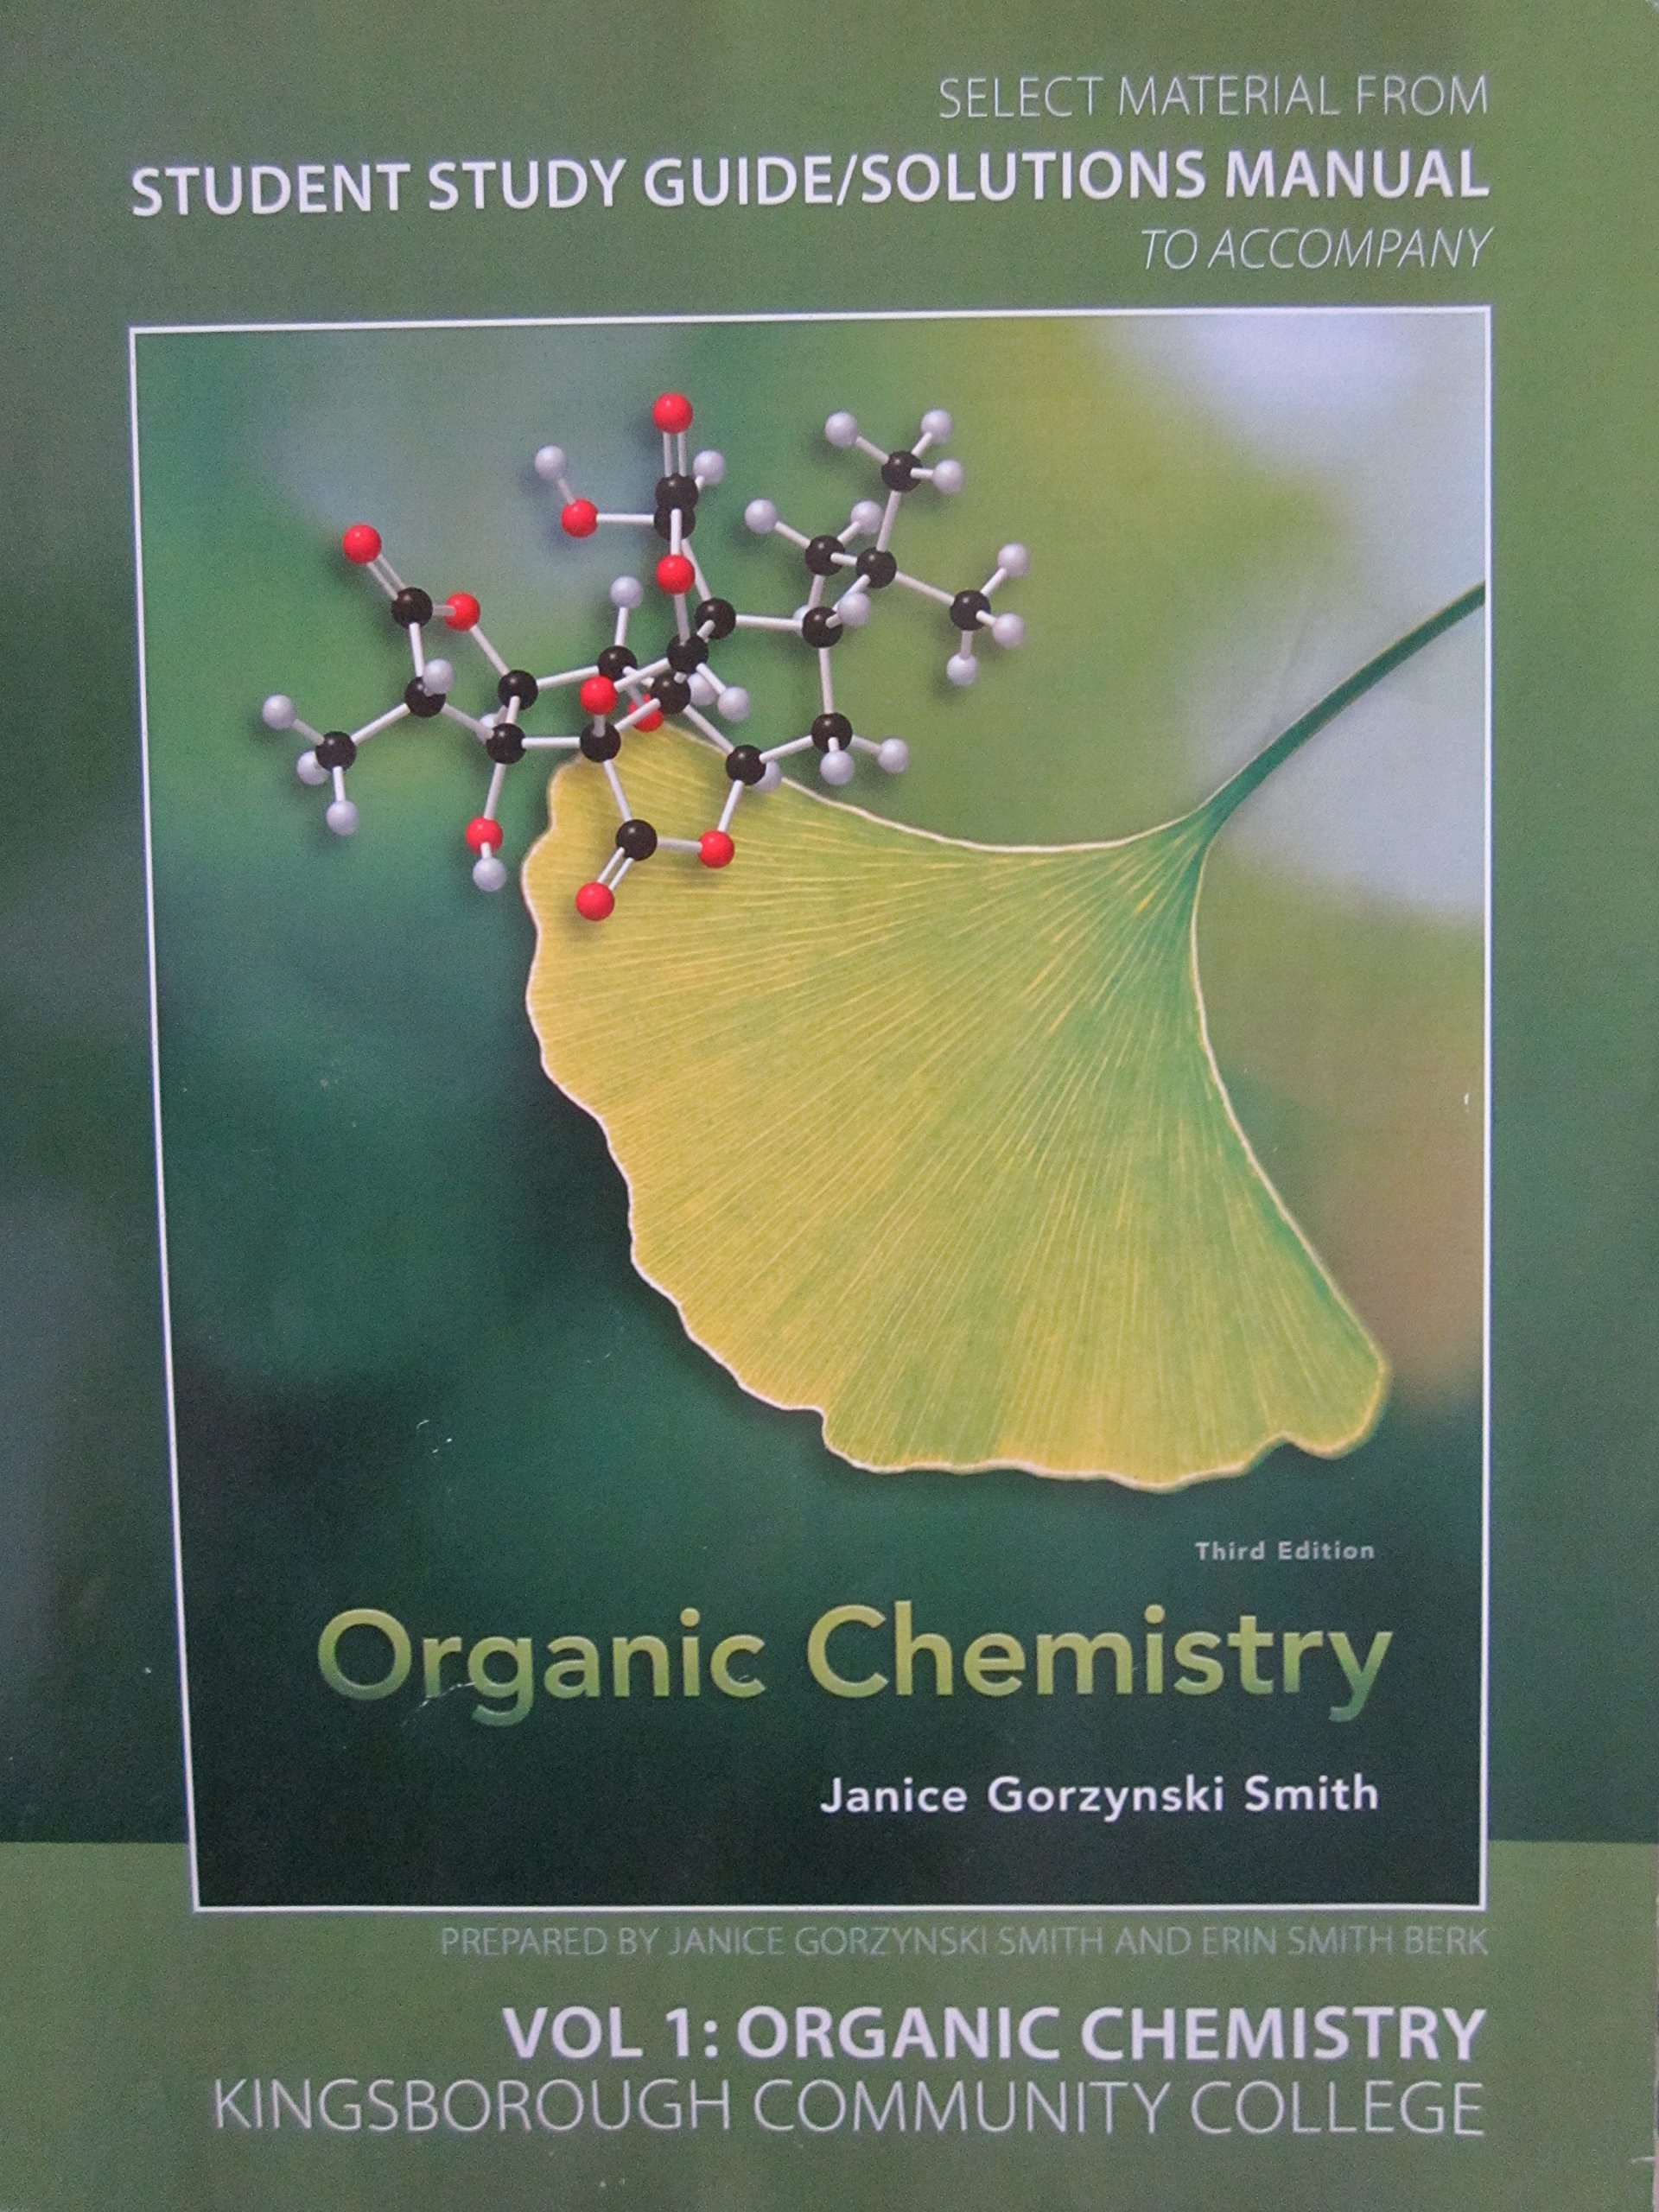 Select Material From Organic Chemistry 3rd Edition for Kingsborough  Community College with Student Study Guide/ Solutions Manual: Janice  Gorzynski Smith, ...